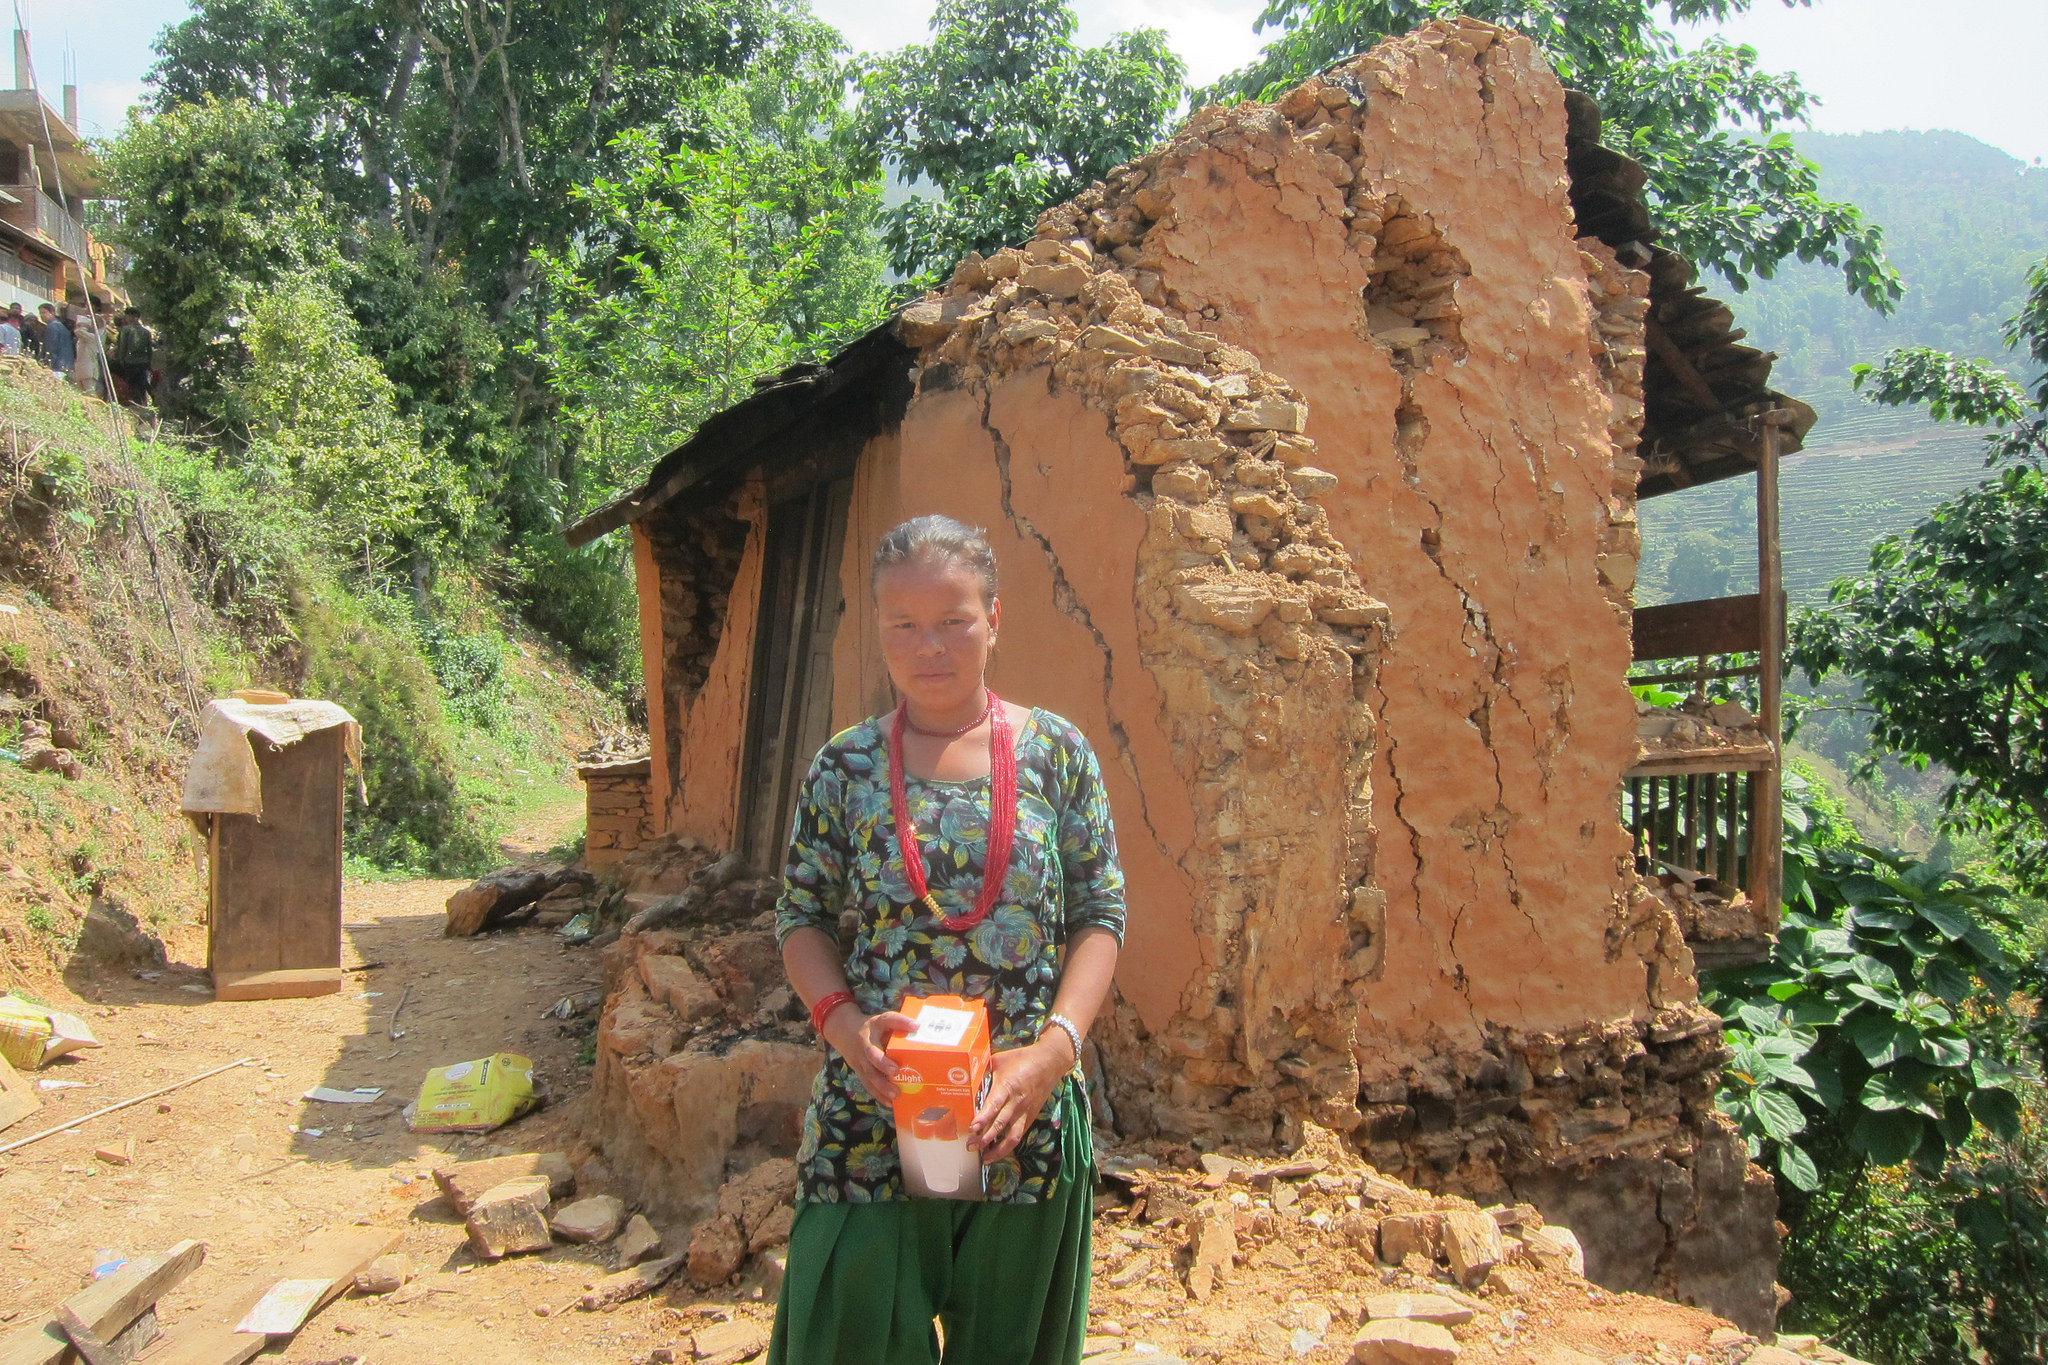 A survivor of the earthquakes, many homes are standing but require demolishing due to being too unsafe to live in.